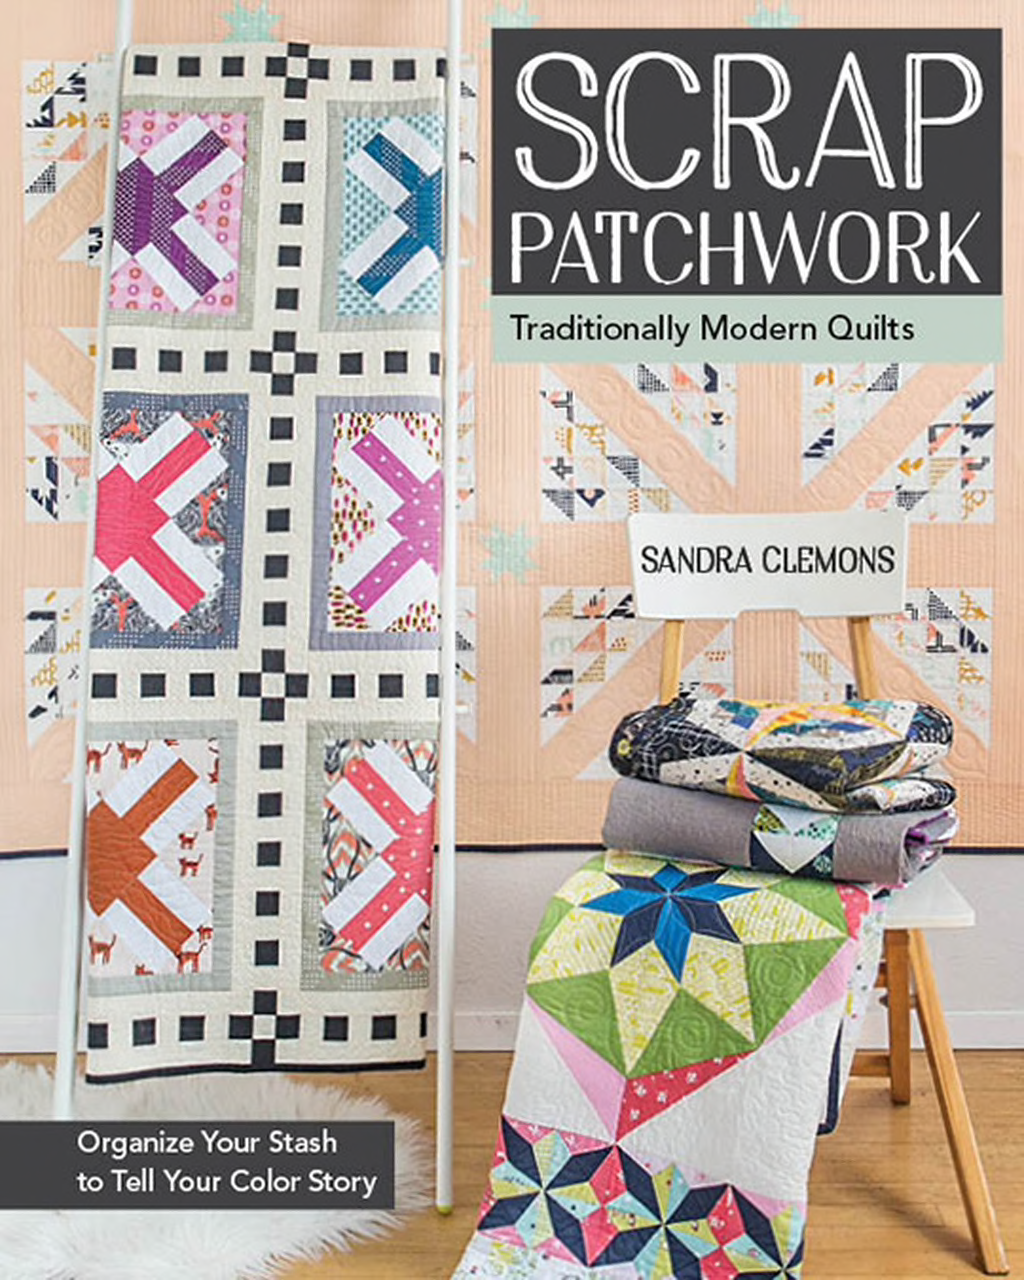 Book. Scrap Patchwork by Sandra Clemons Stash Books